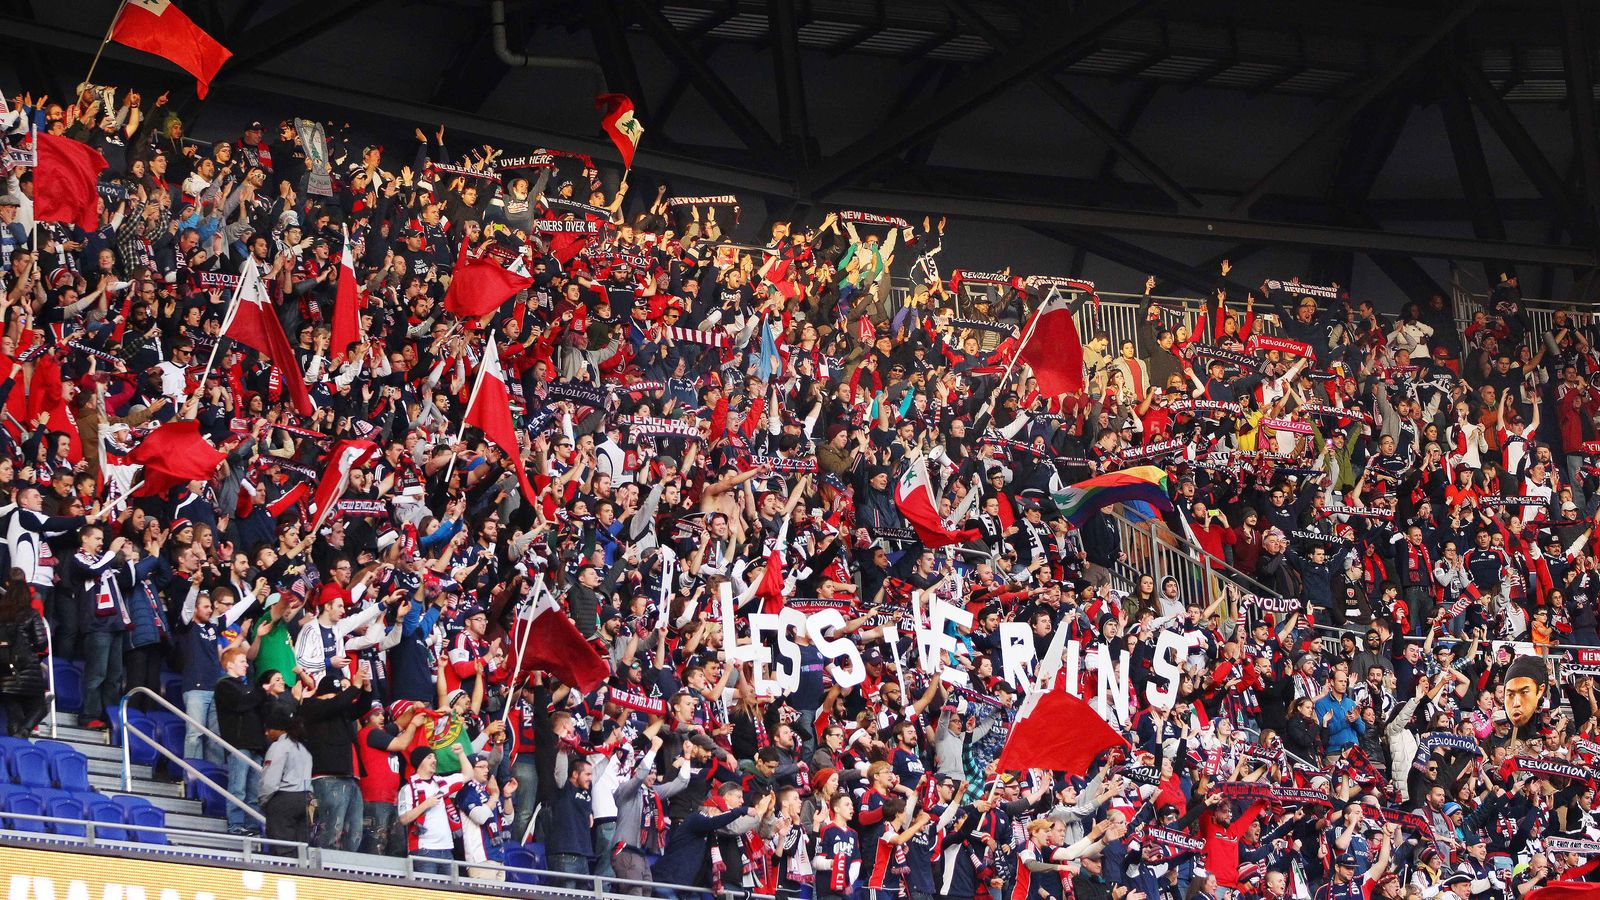 MLS soccer supporter diversity is not a local issue.